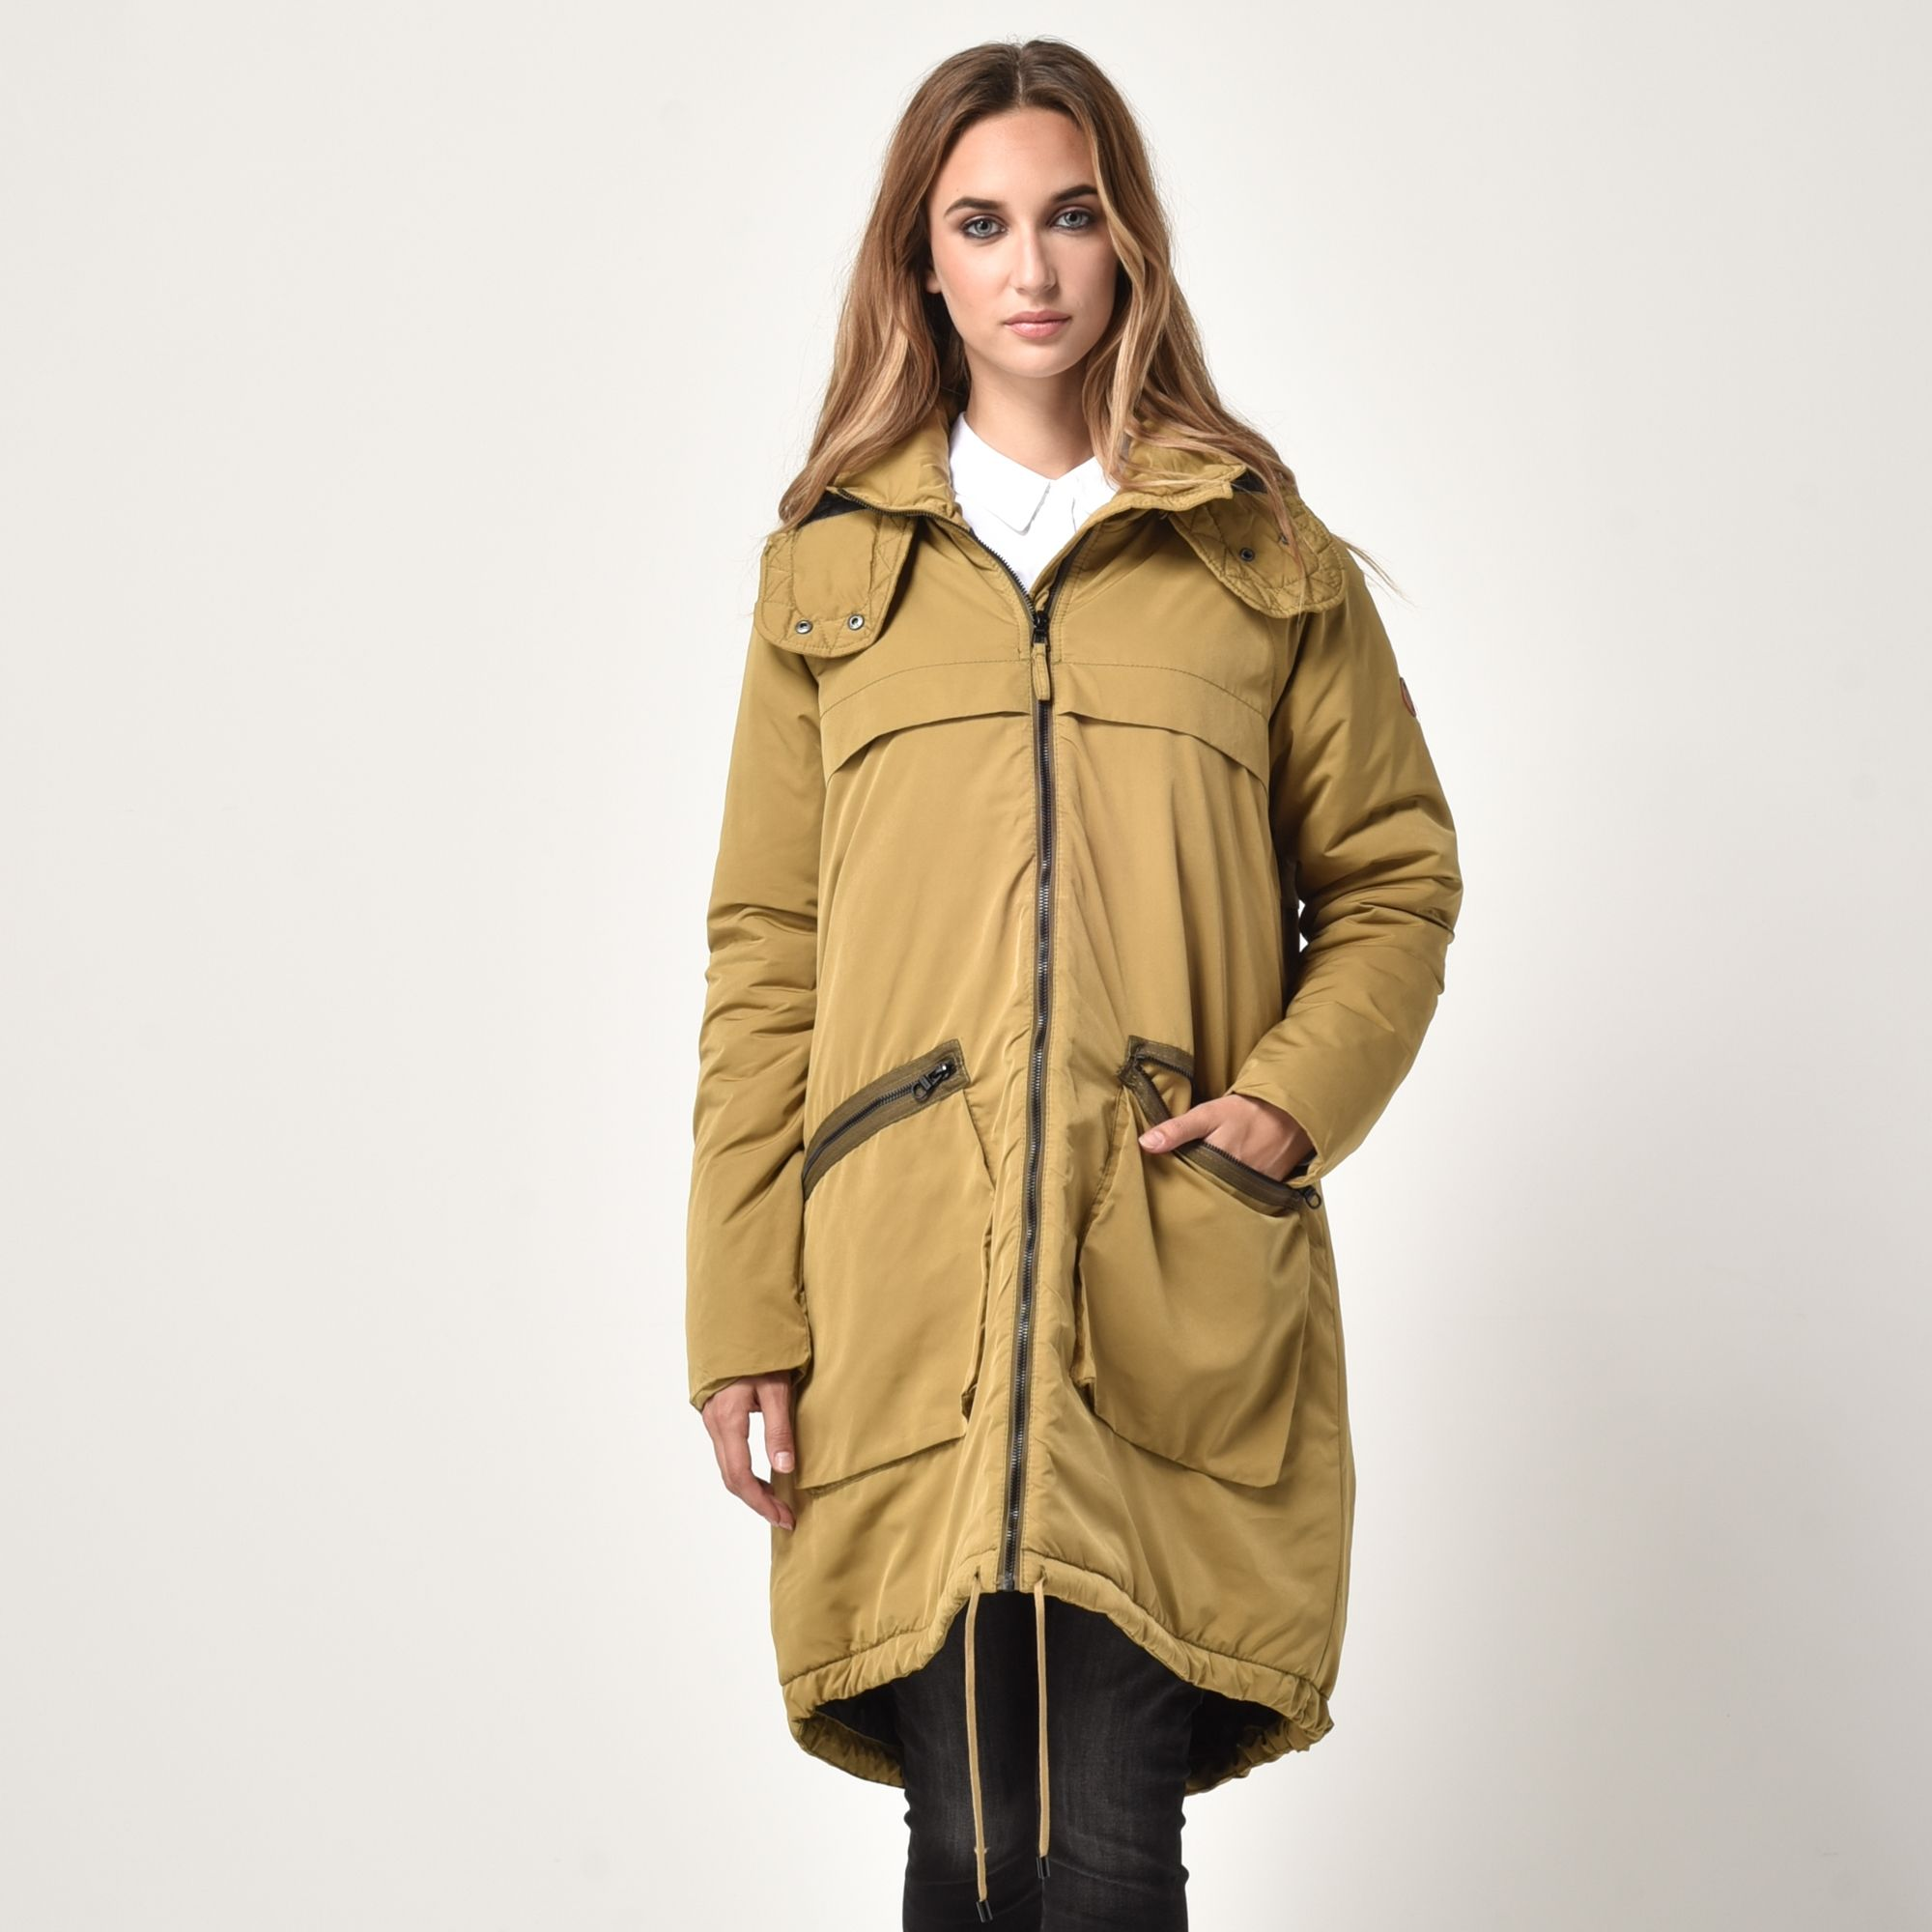 Bench Get Up And Go Jacket Jackets Coats Jackets Women Jackets For Women [ 2000 x 2000 Pixel ]